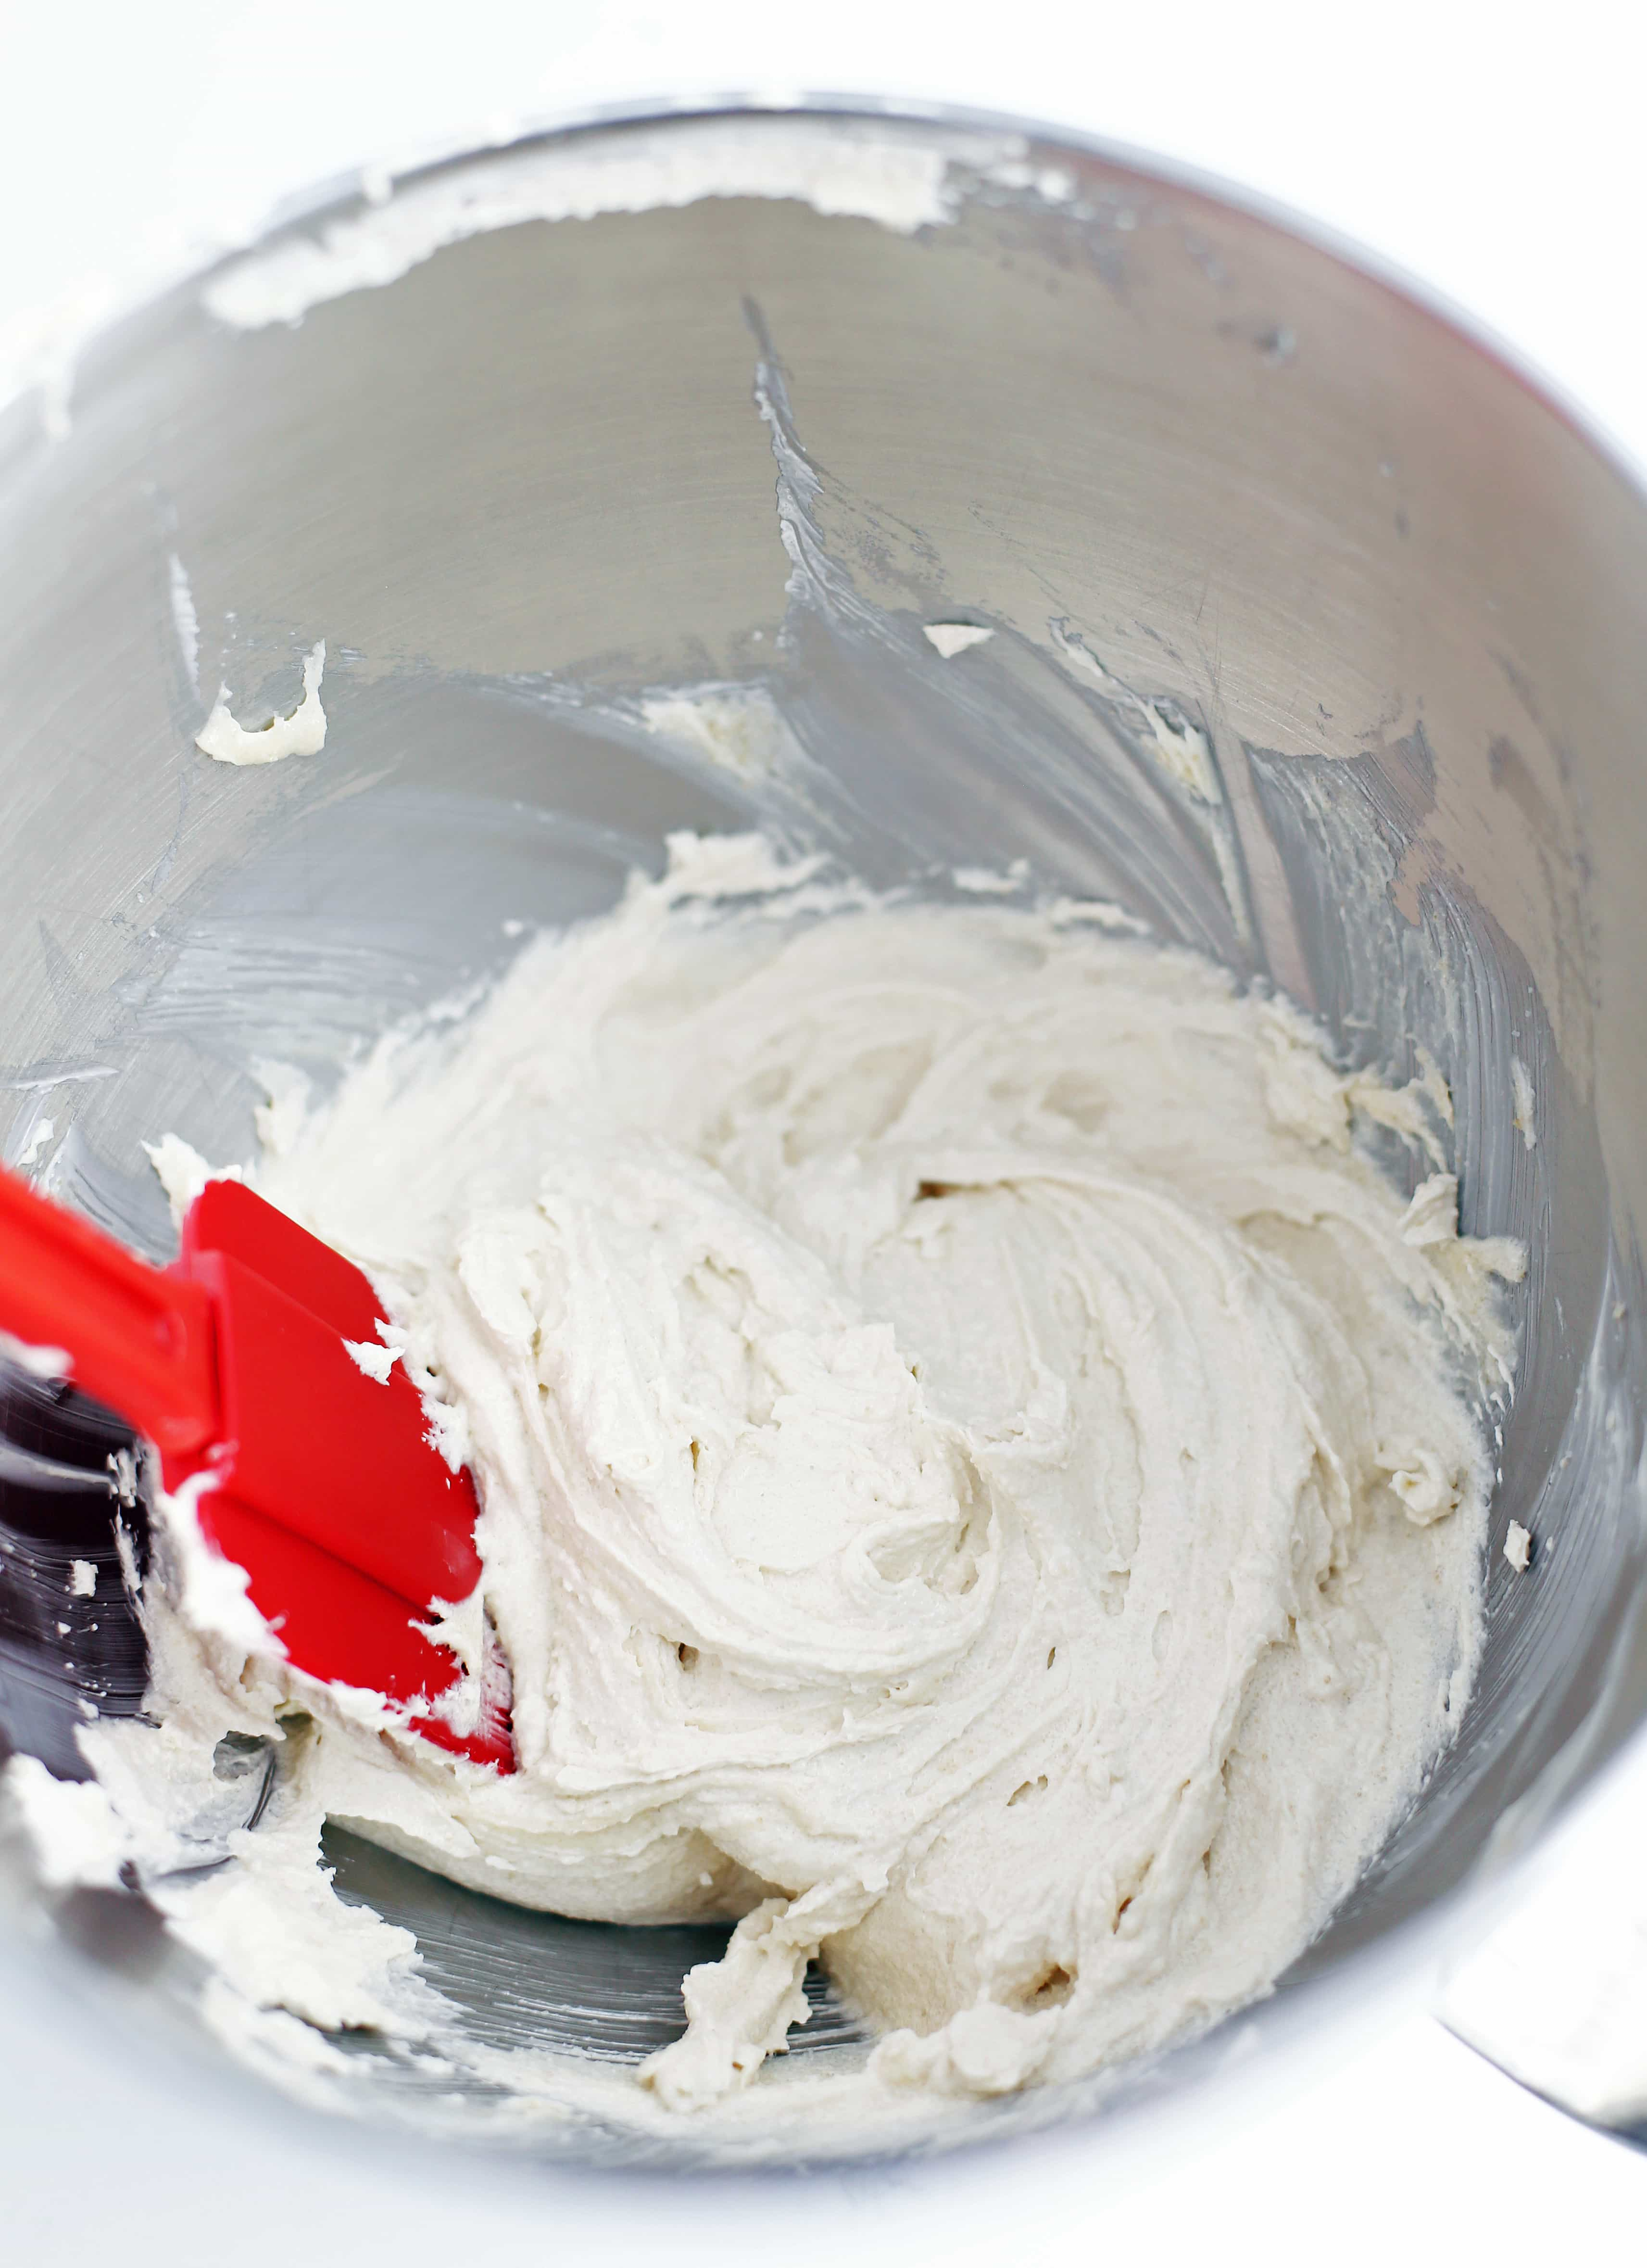 Whipped butter and sugar in a stainless steel bowl.